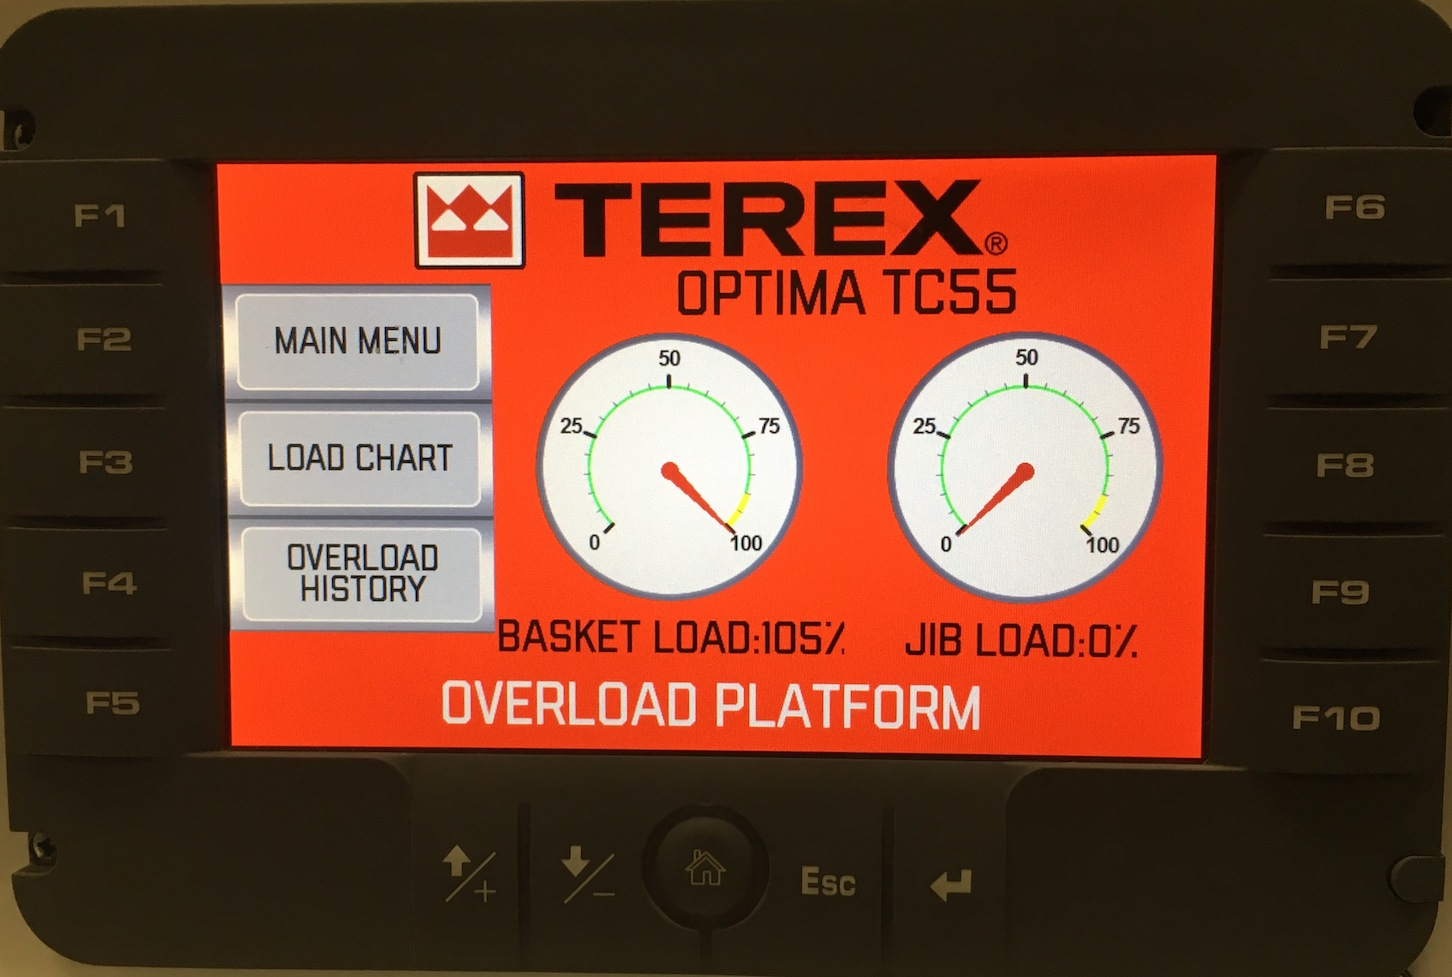 Terex has updated the monitor display for the Terex Load Alert system.